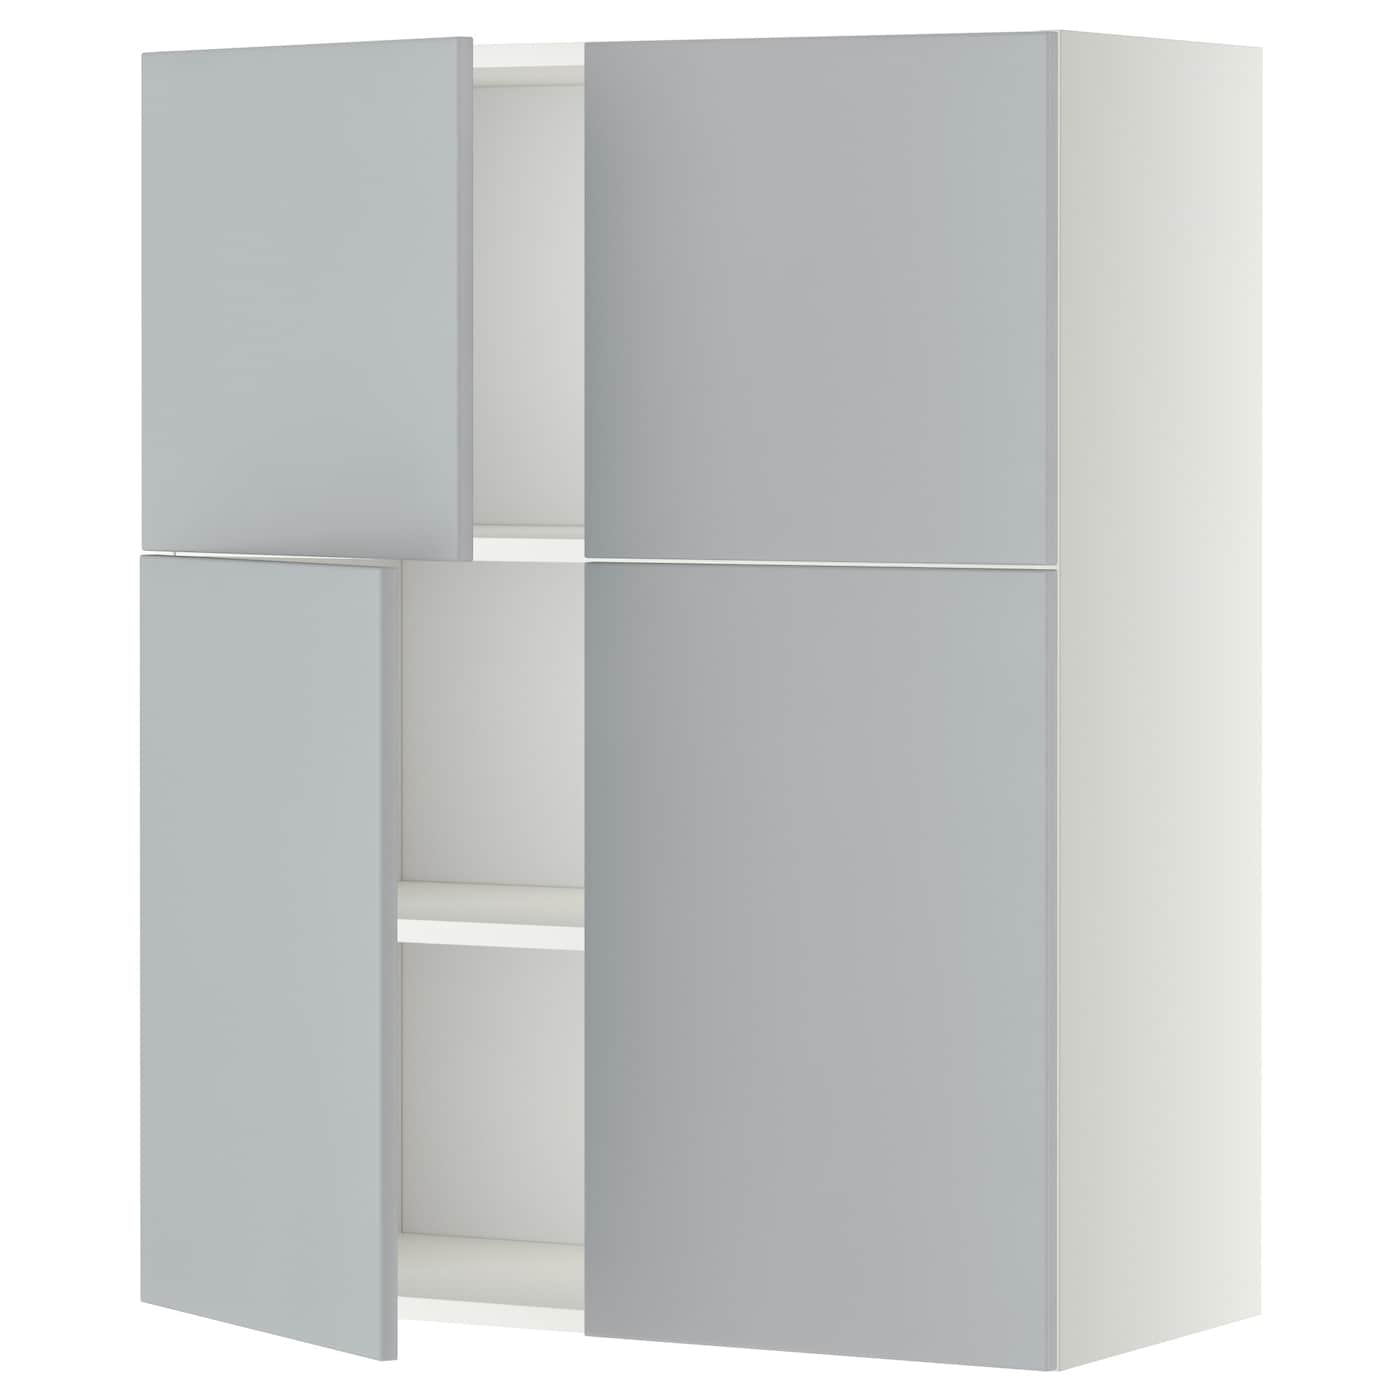 Interior Wall Cabinet Ikea metod wall cabinet with shelves4 doors whiteveddinge grey 80x100 ikea sturdy frame construction 18 mm thick